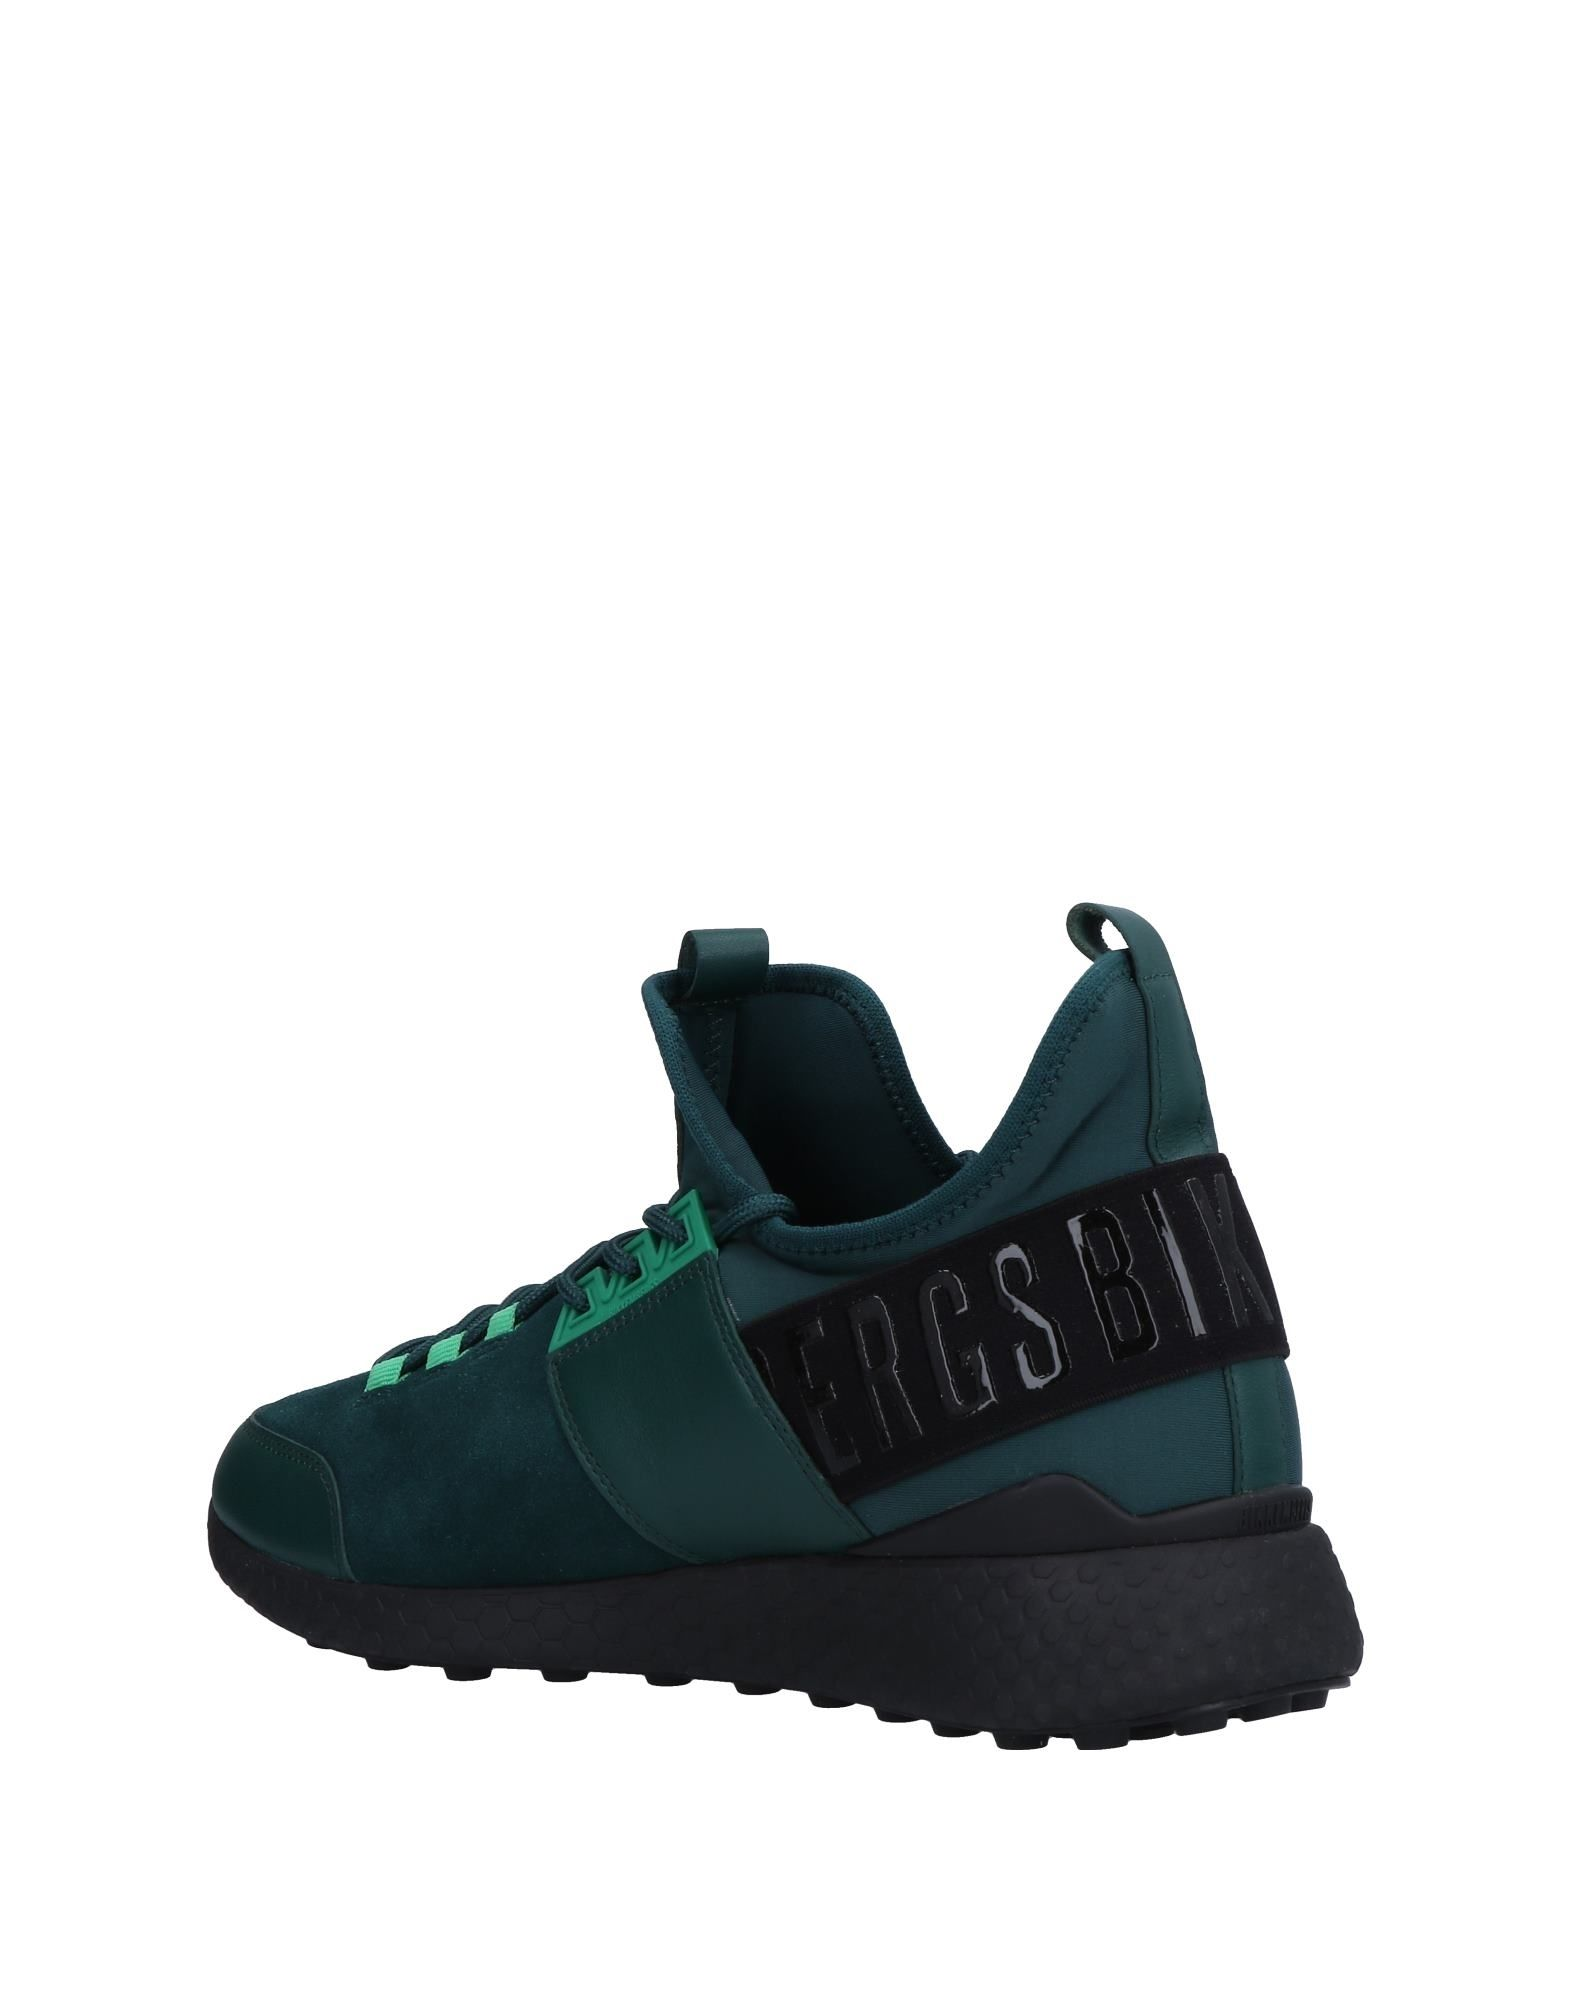 Bikkembergs Sneakers Sneakers Sneakers - Men Bikkembergs Sneakers online on  Canada - 11518023MR e5688c